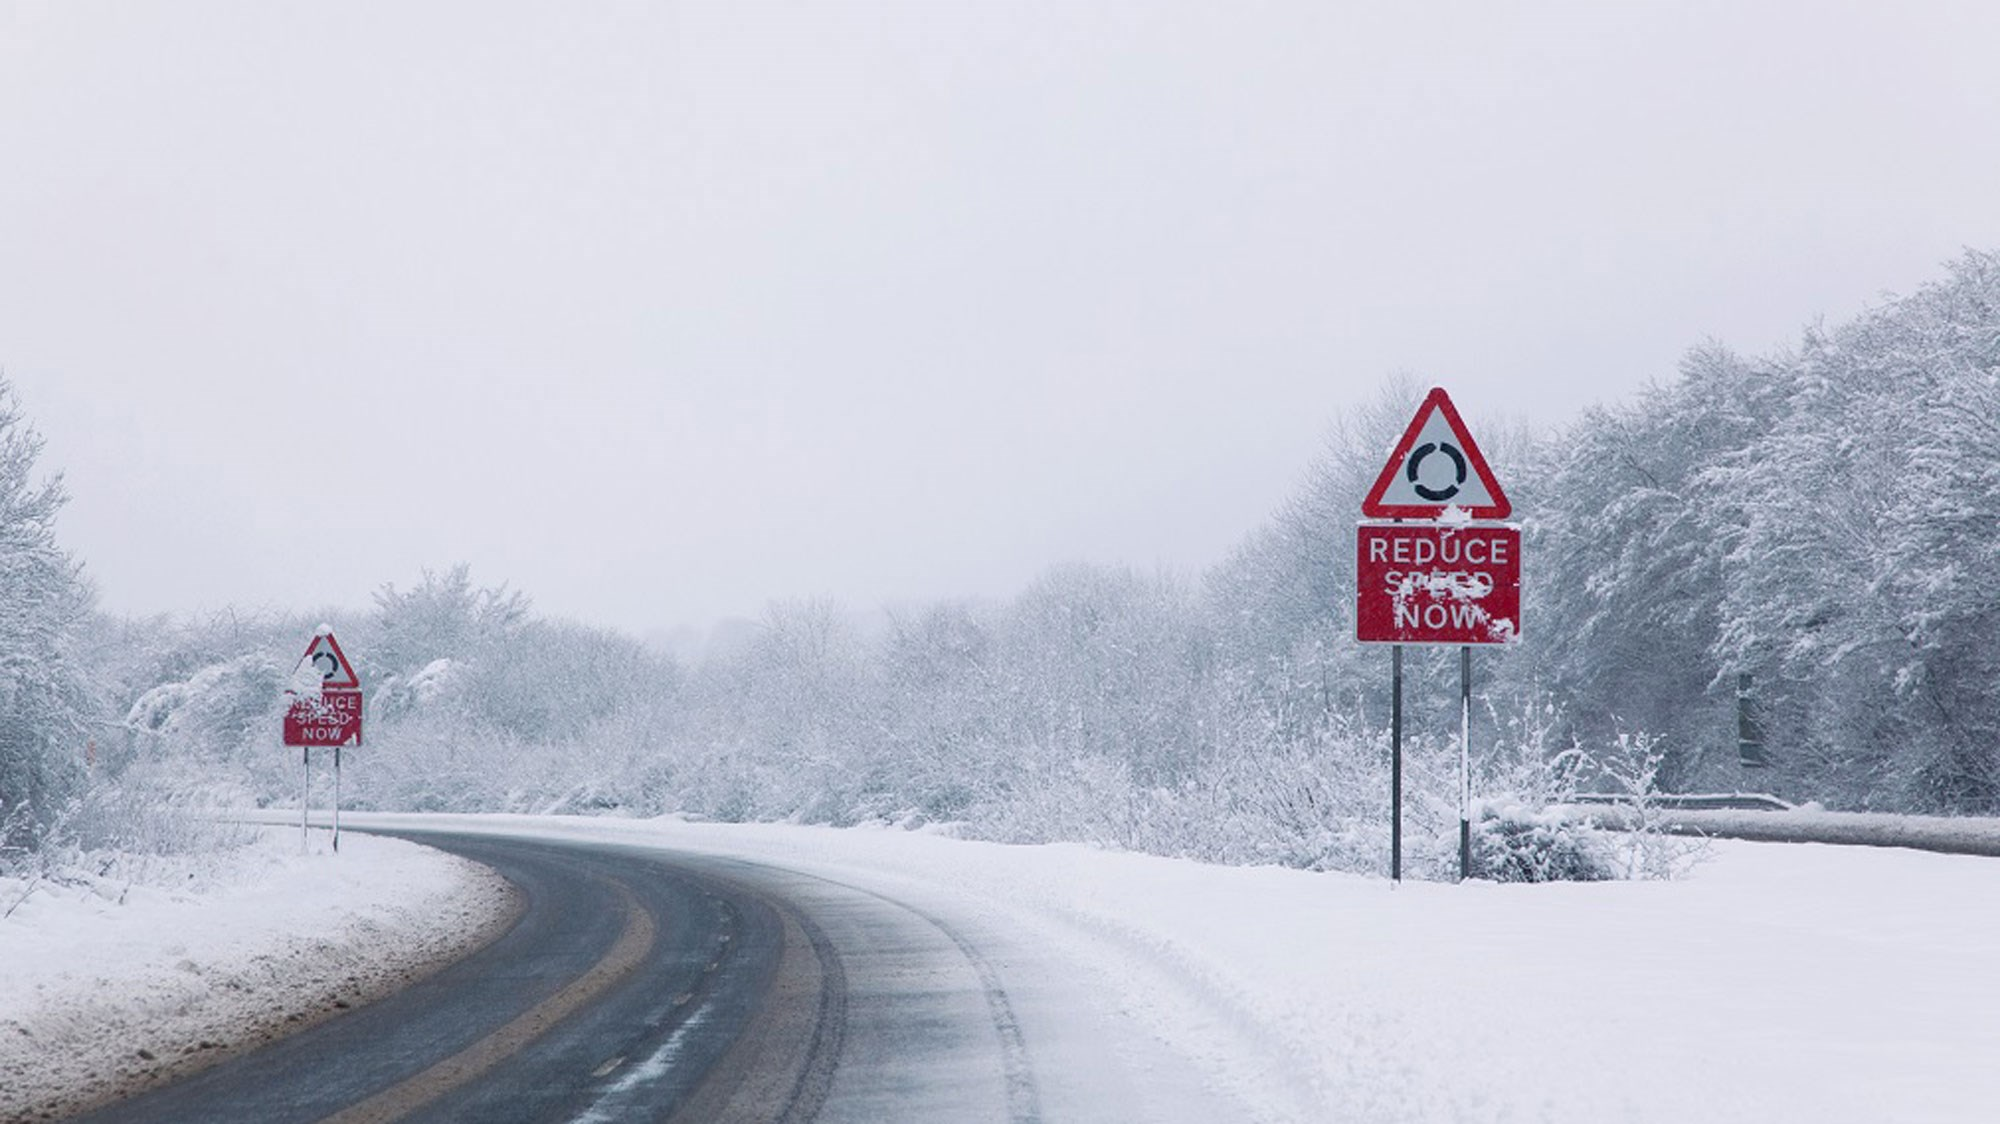 Winter tyres UK 2019: Are snow tyres worth buying?